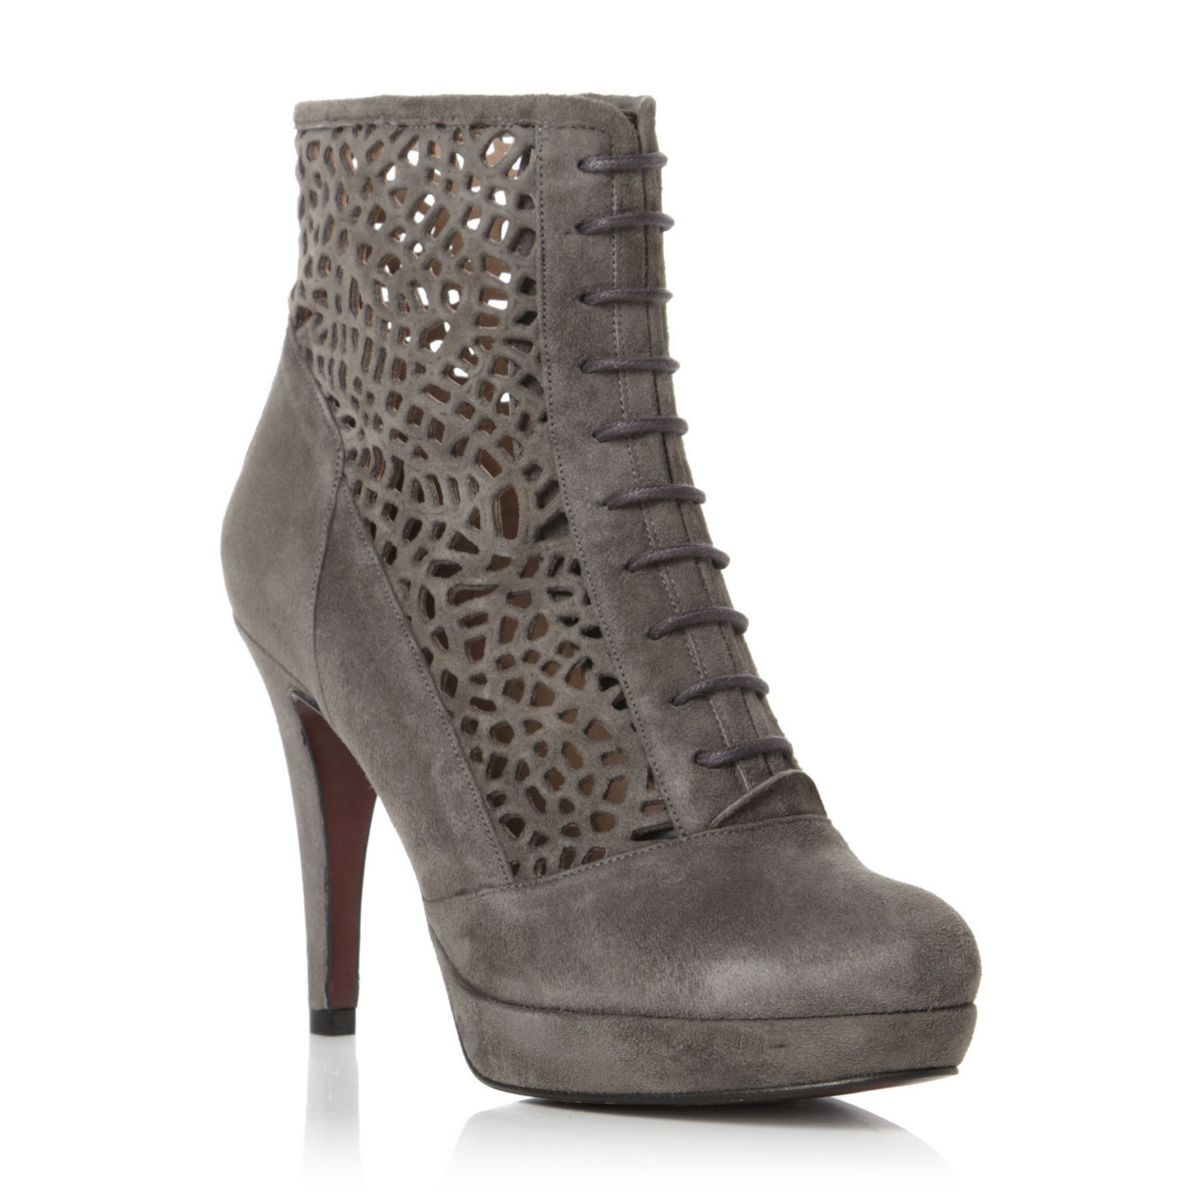 PIED-A-TERRE-LADIES-SIDNEY-WOMENS-BROWN-CUT-OUT-HIGH-HEEL-ANKLE-BOOTS-SIZE-3-8